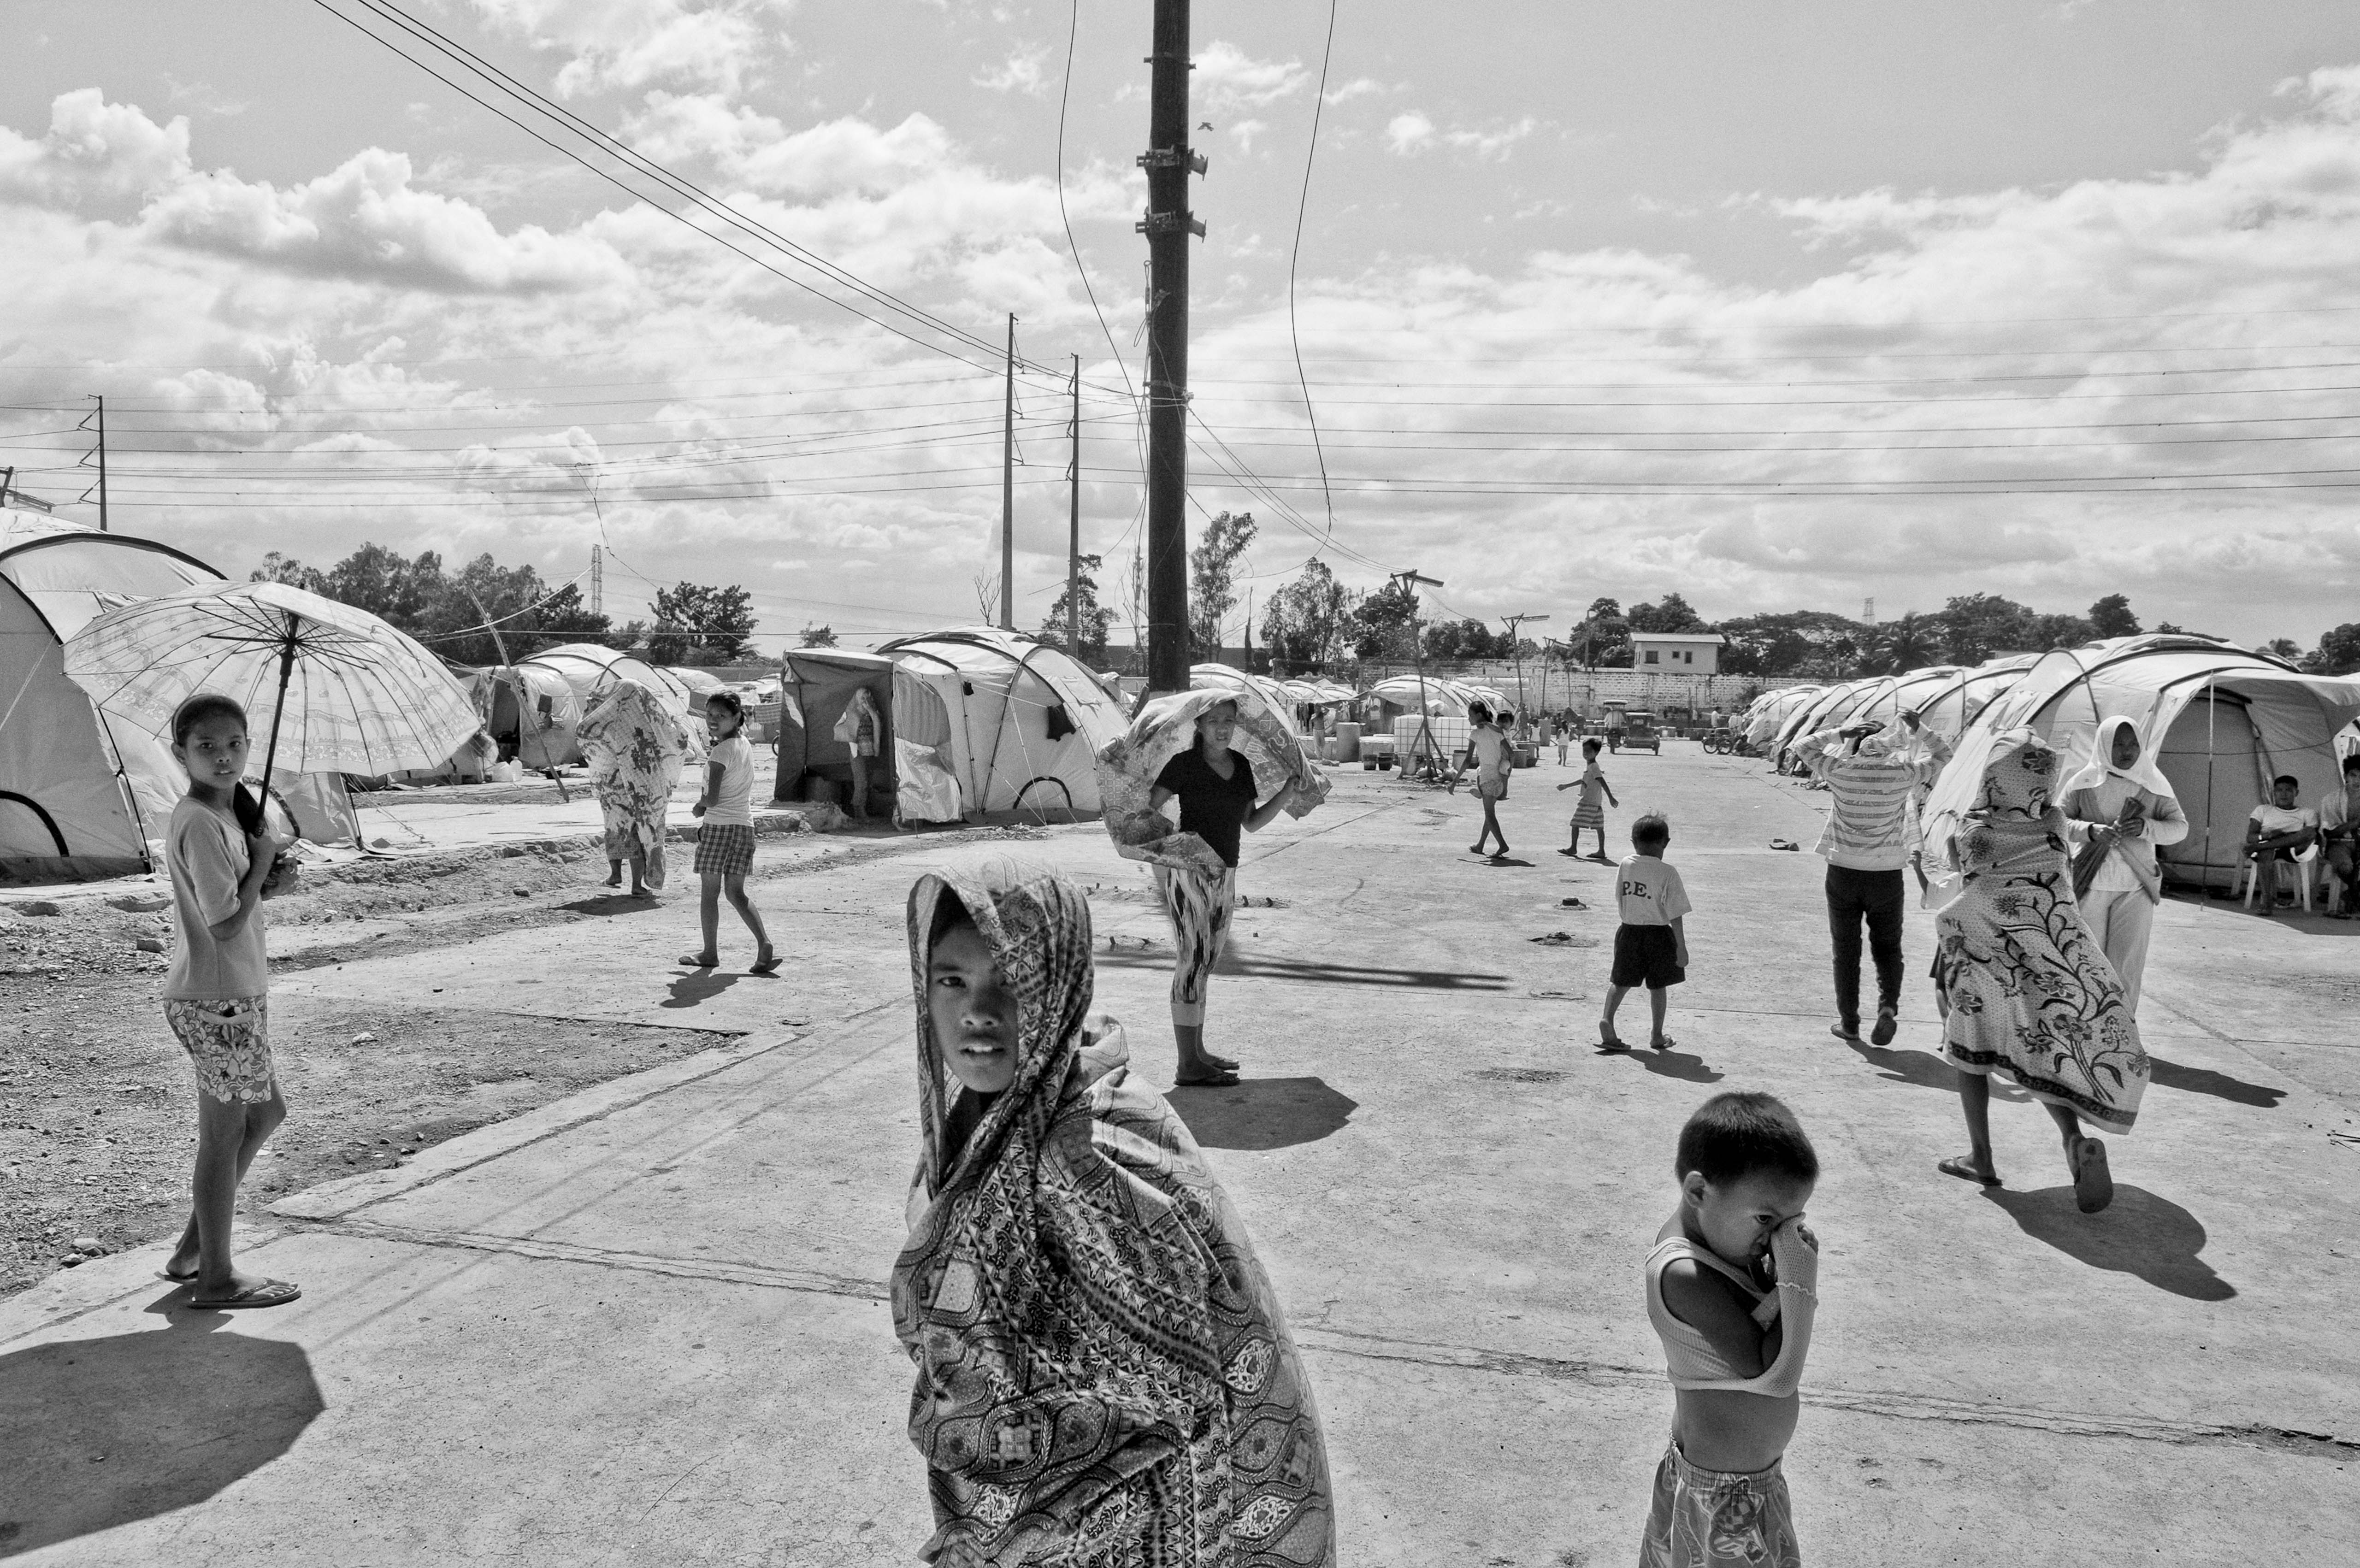 Families that have been displaced for several months due to stagnant floodwaters seek temporary shelter in a rundown factory on Oct. 23, 2012 in Laguna, Philippines.